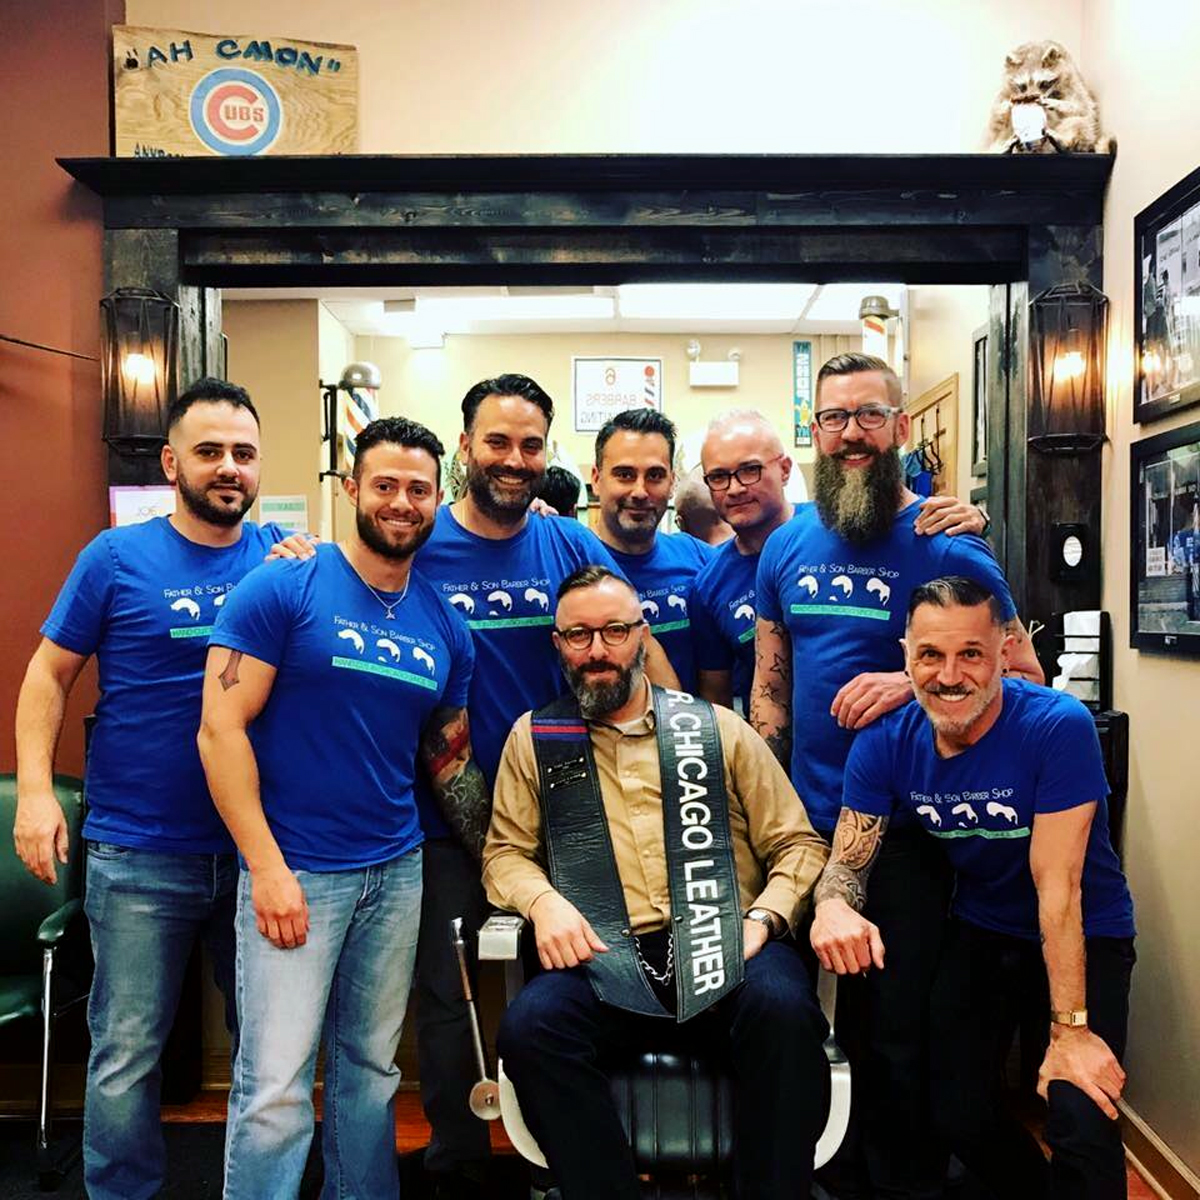 Jerry Cernak (seated) poses for a photo with the staff at Father and Son barbershop. Cernak won the Mr. Chicago Leather competition in 2017. (Photo courtesy of Jerry Cernak.)